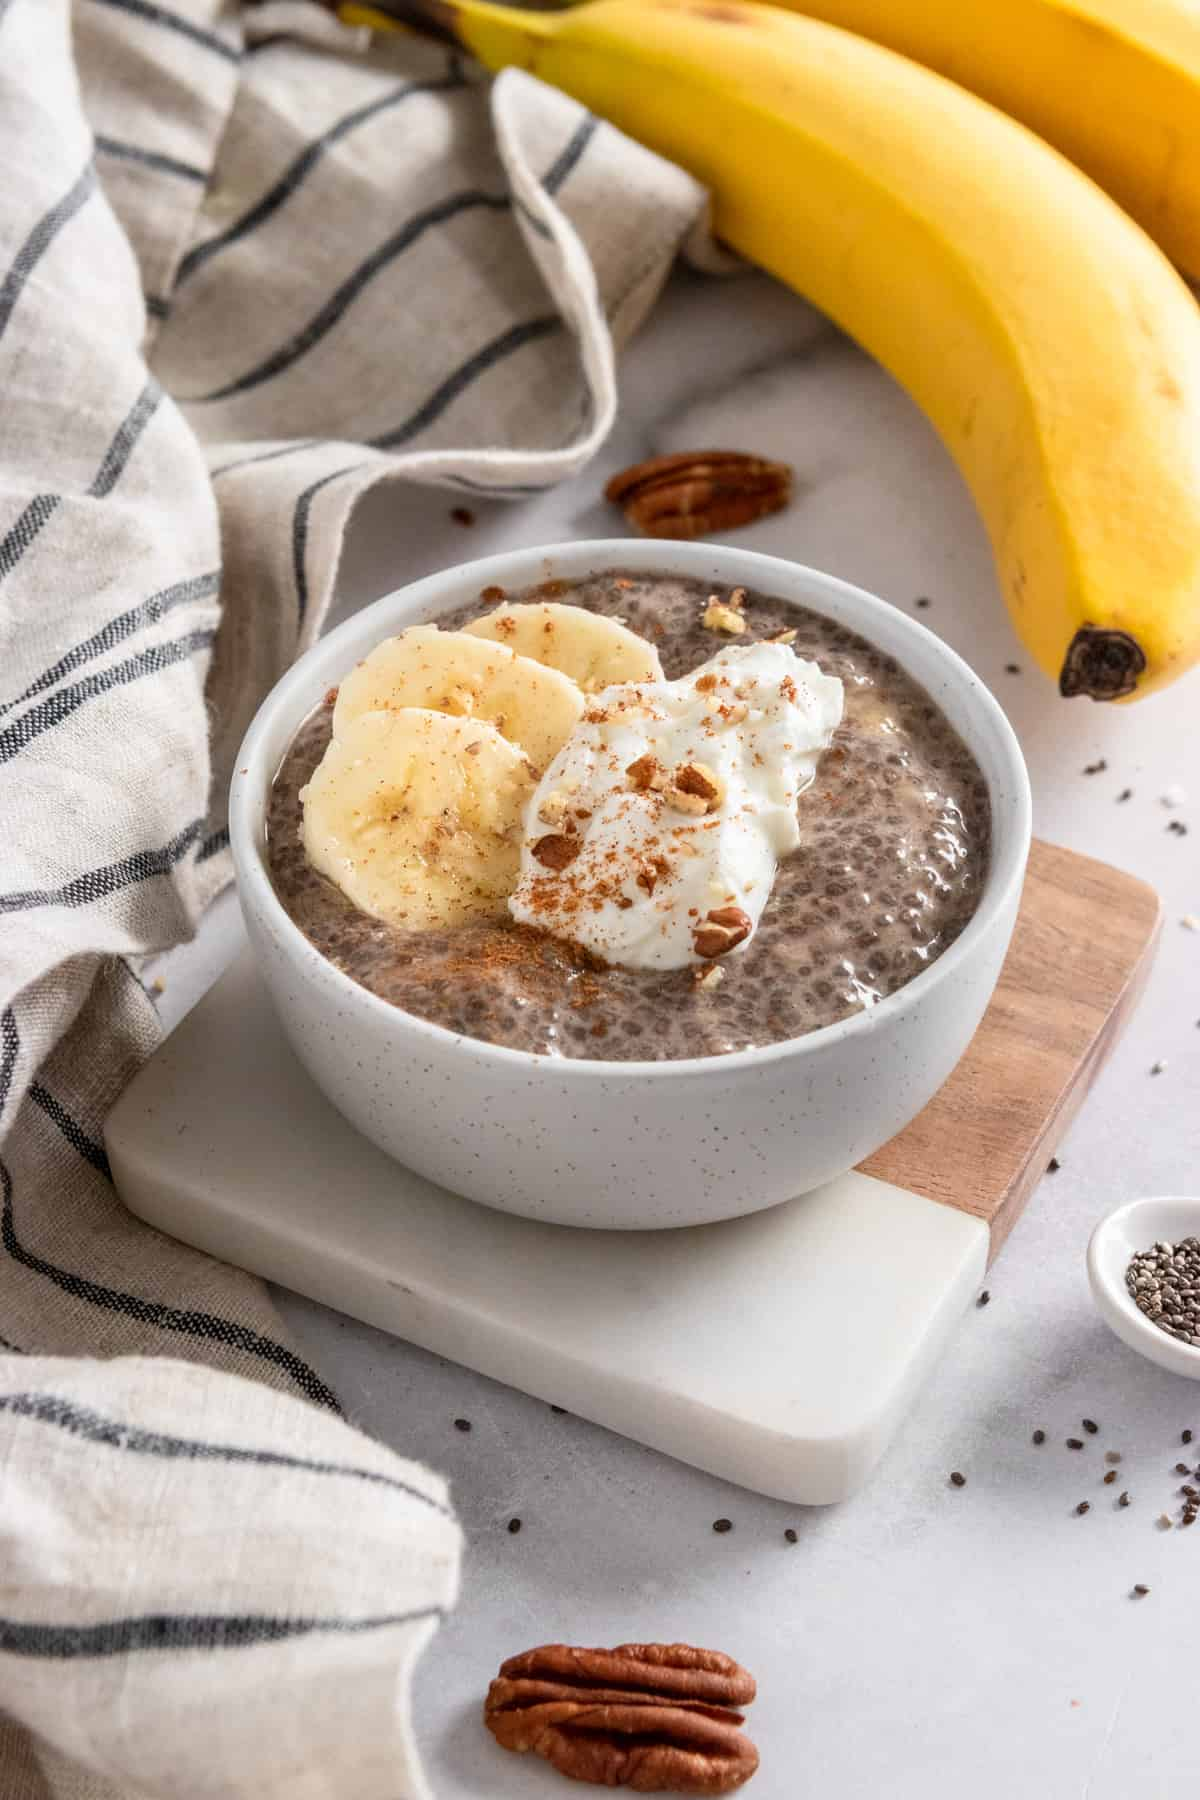 Chia pudding in bowl on coaster with bananas and pecans in the background.